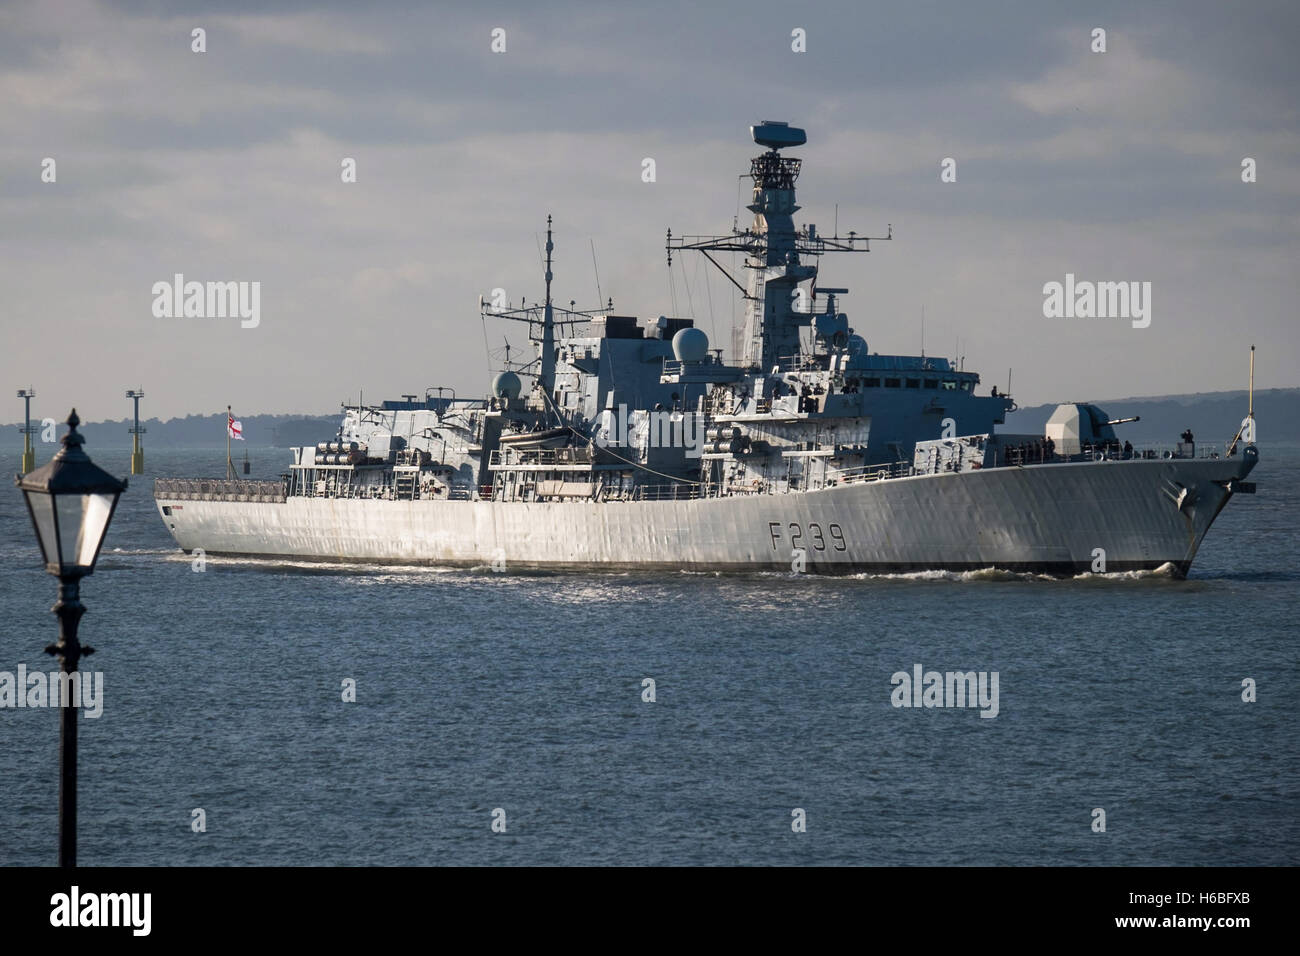 The Type 23 Frigate, HMS Richmond (F239), returning to her home port of Portsmouth. - Stock Image